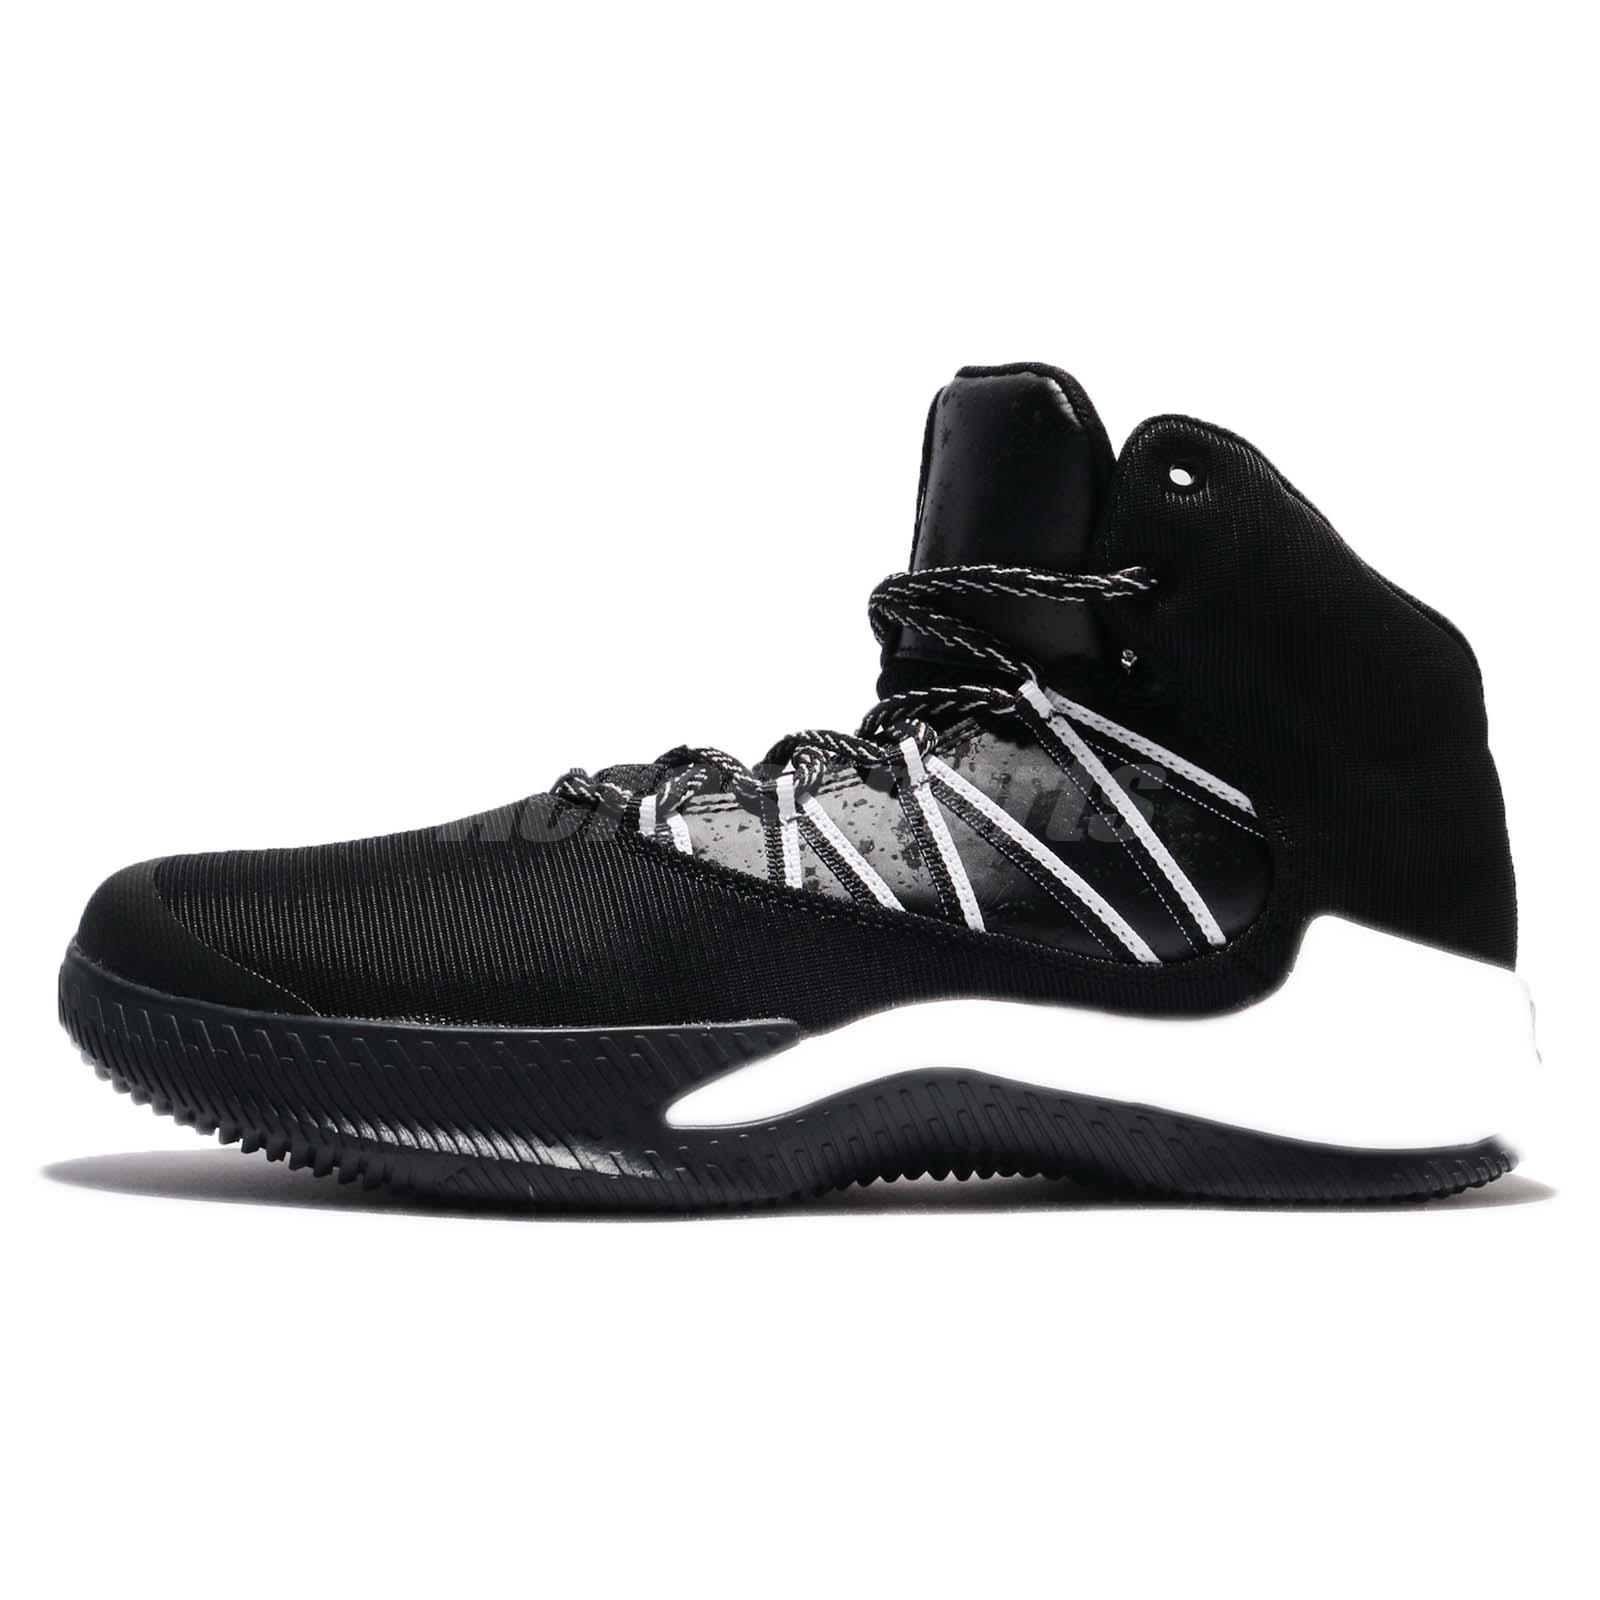 6c29a40ca32 adidas Infiltrate Black White Men Basketball Shoes Trainers Sneakers BW1359